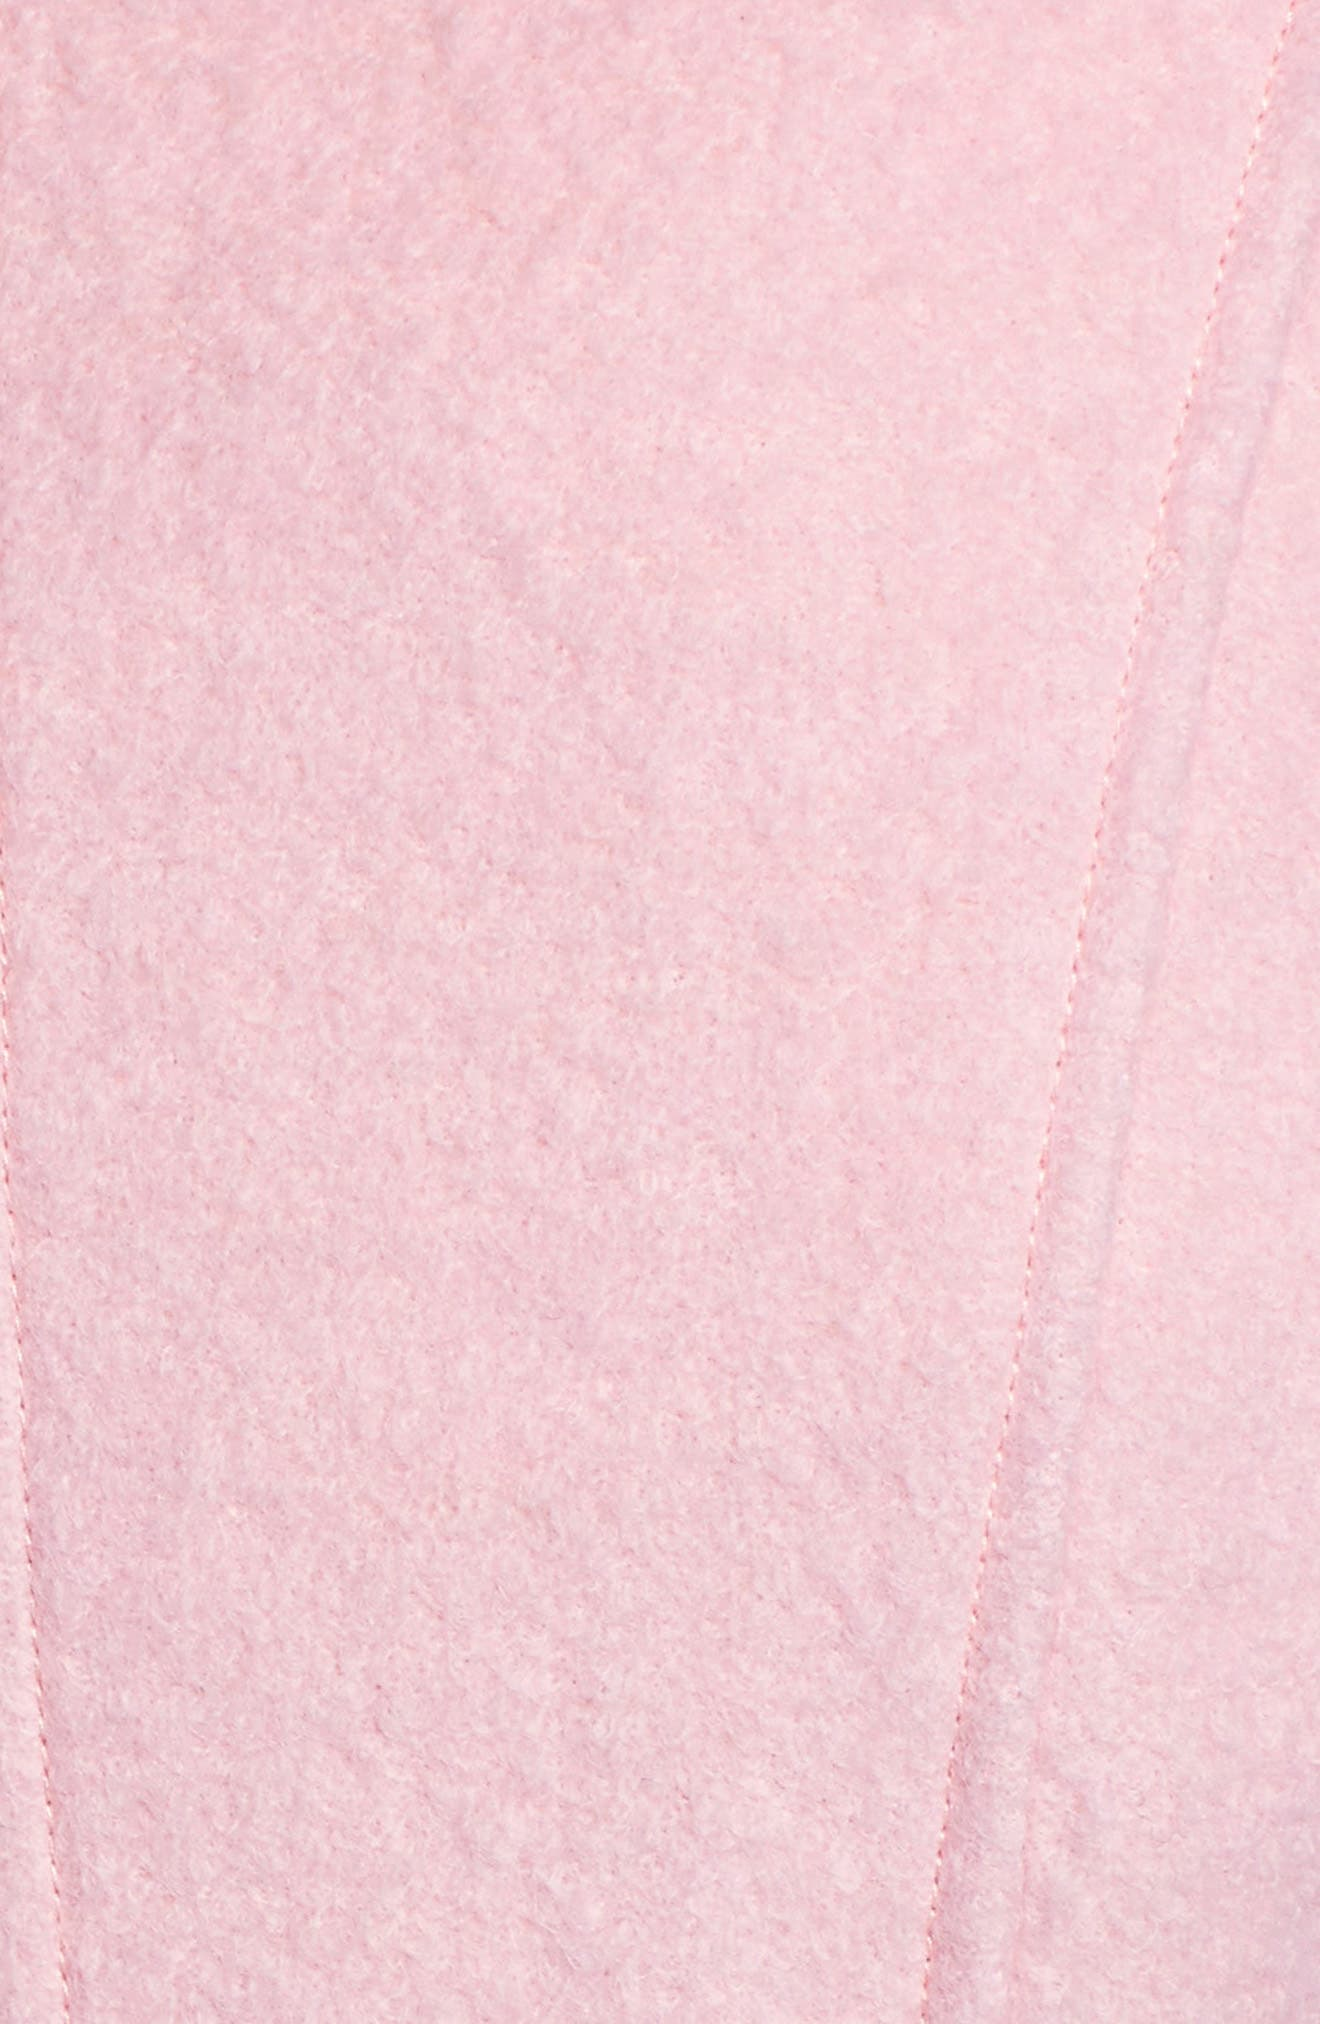 Double Breasted Wool Blend Coat,                             Alternate thumbnail 5, color,                             Pale Pink